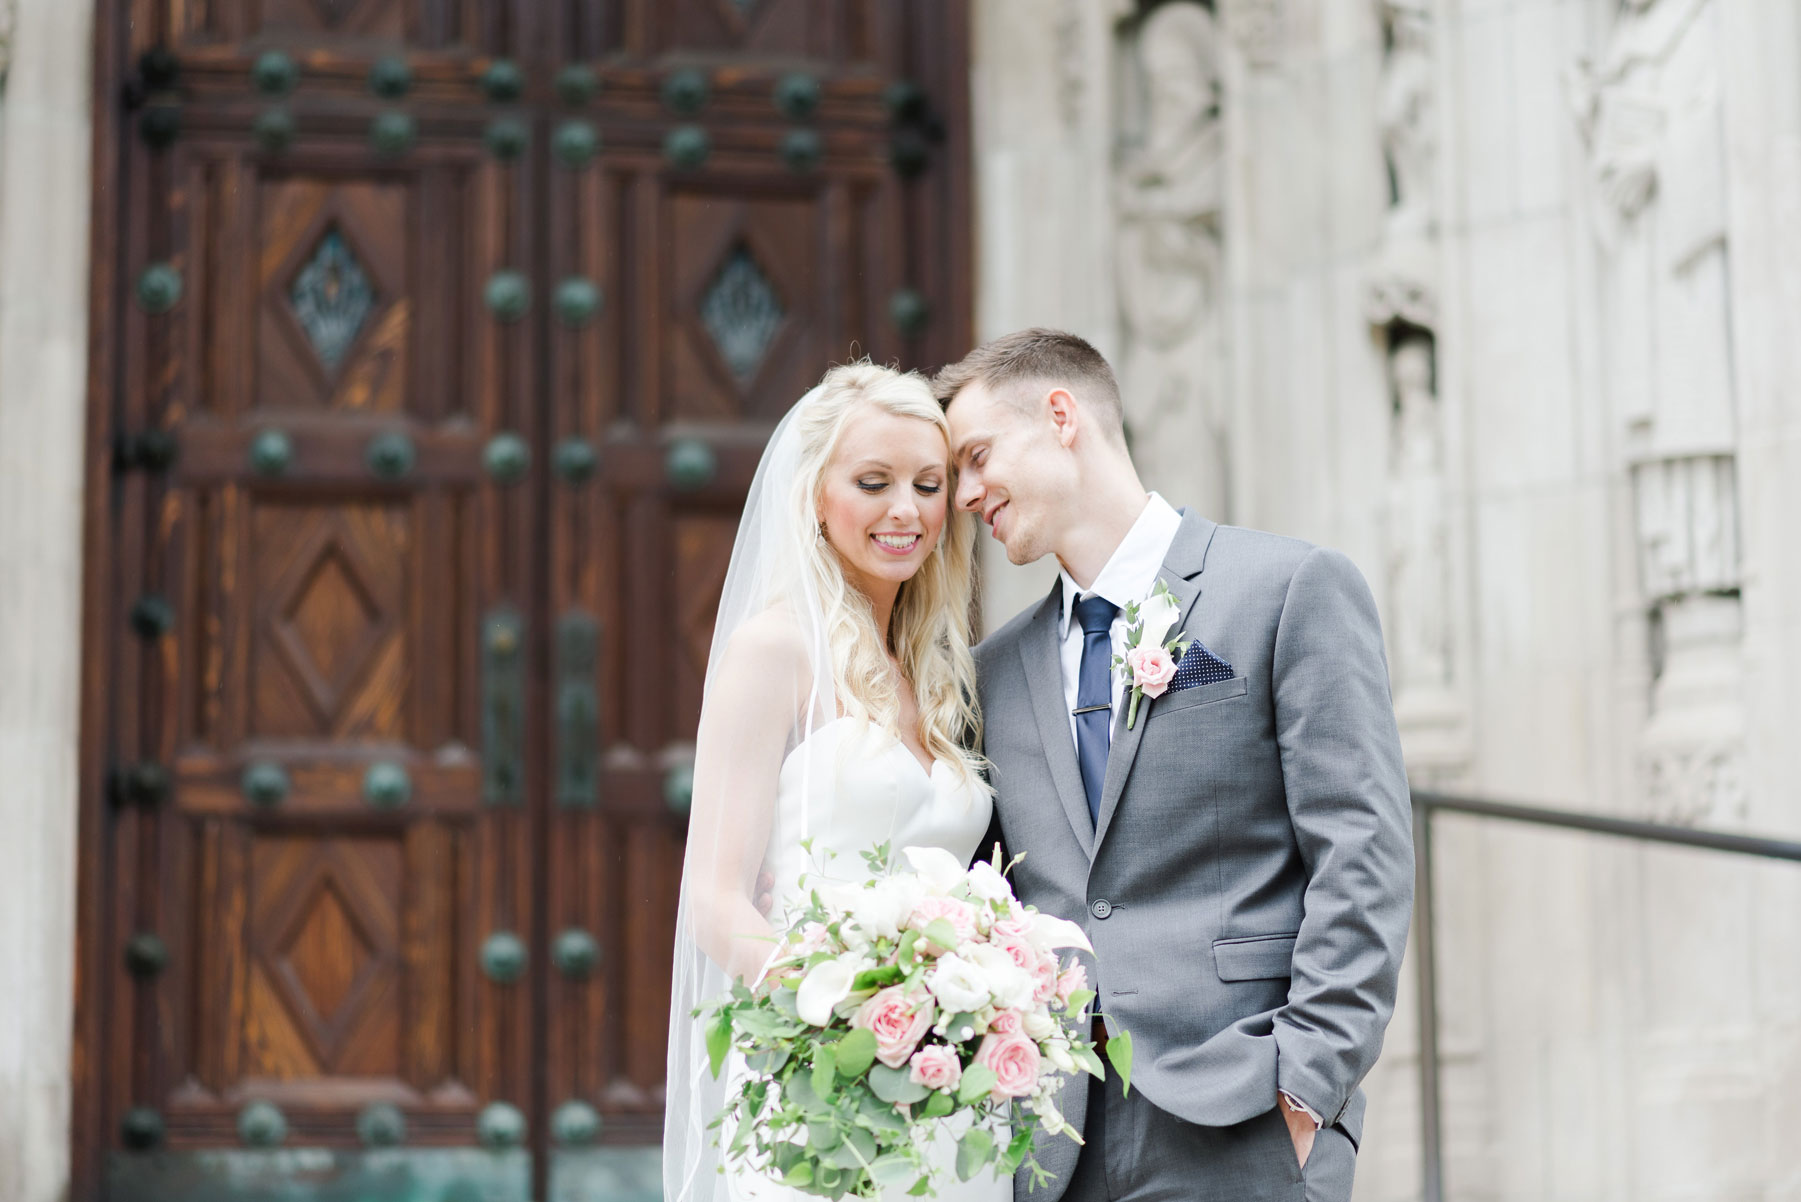 Samantha + Jake - Samantha was stunning in her Justin Alexander gown and can we talk about her heels?